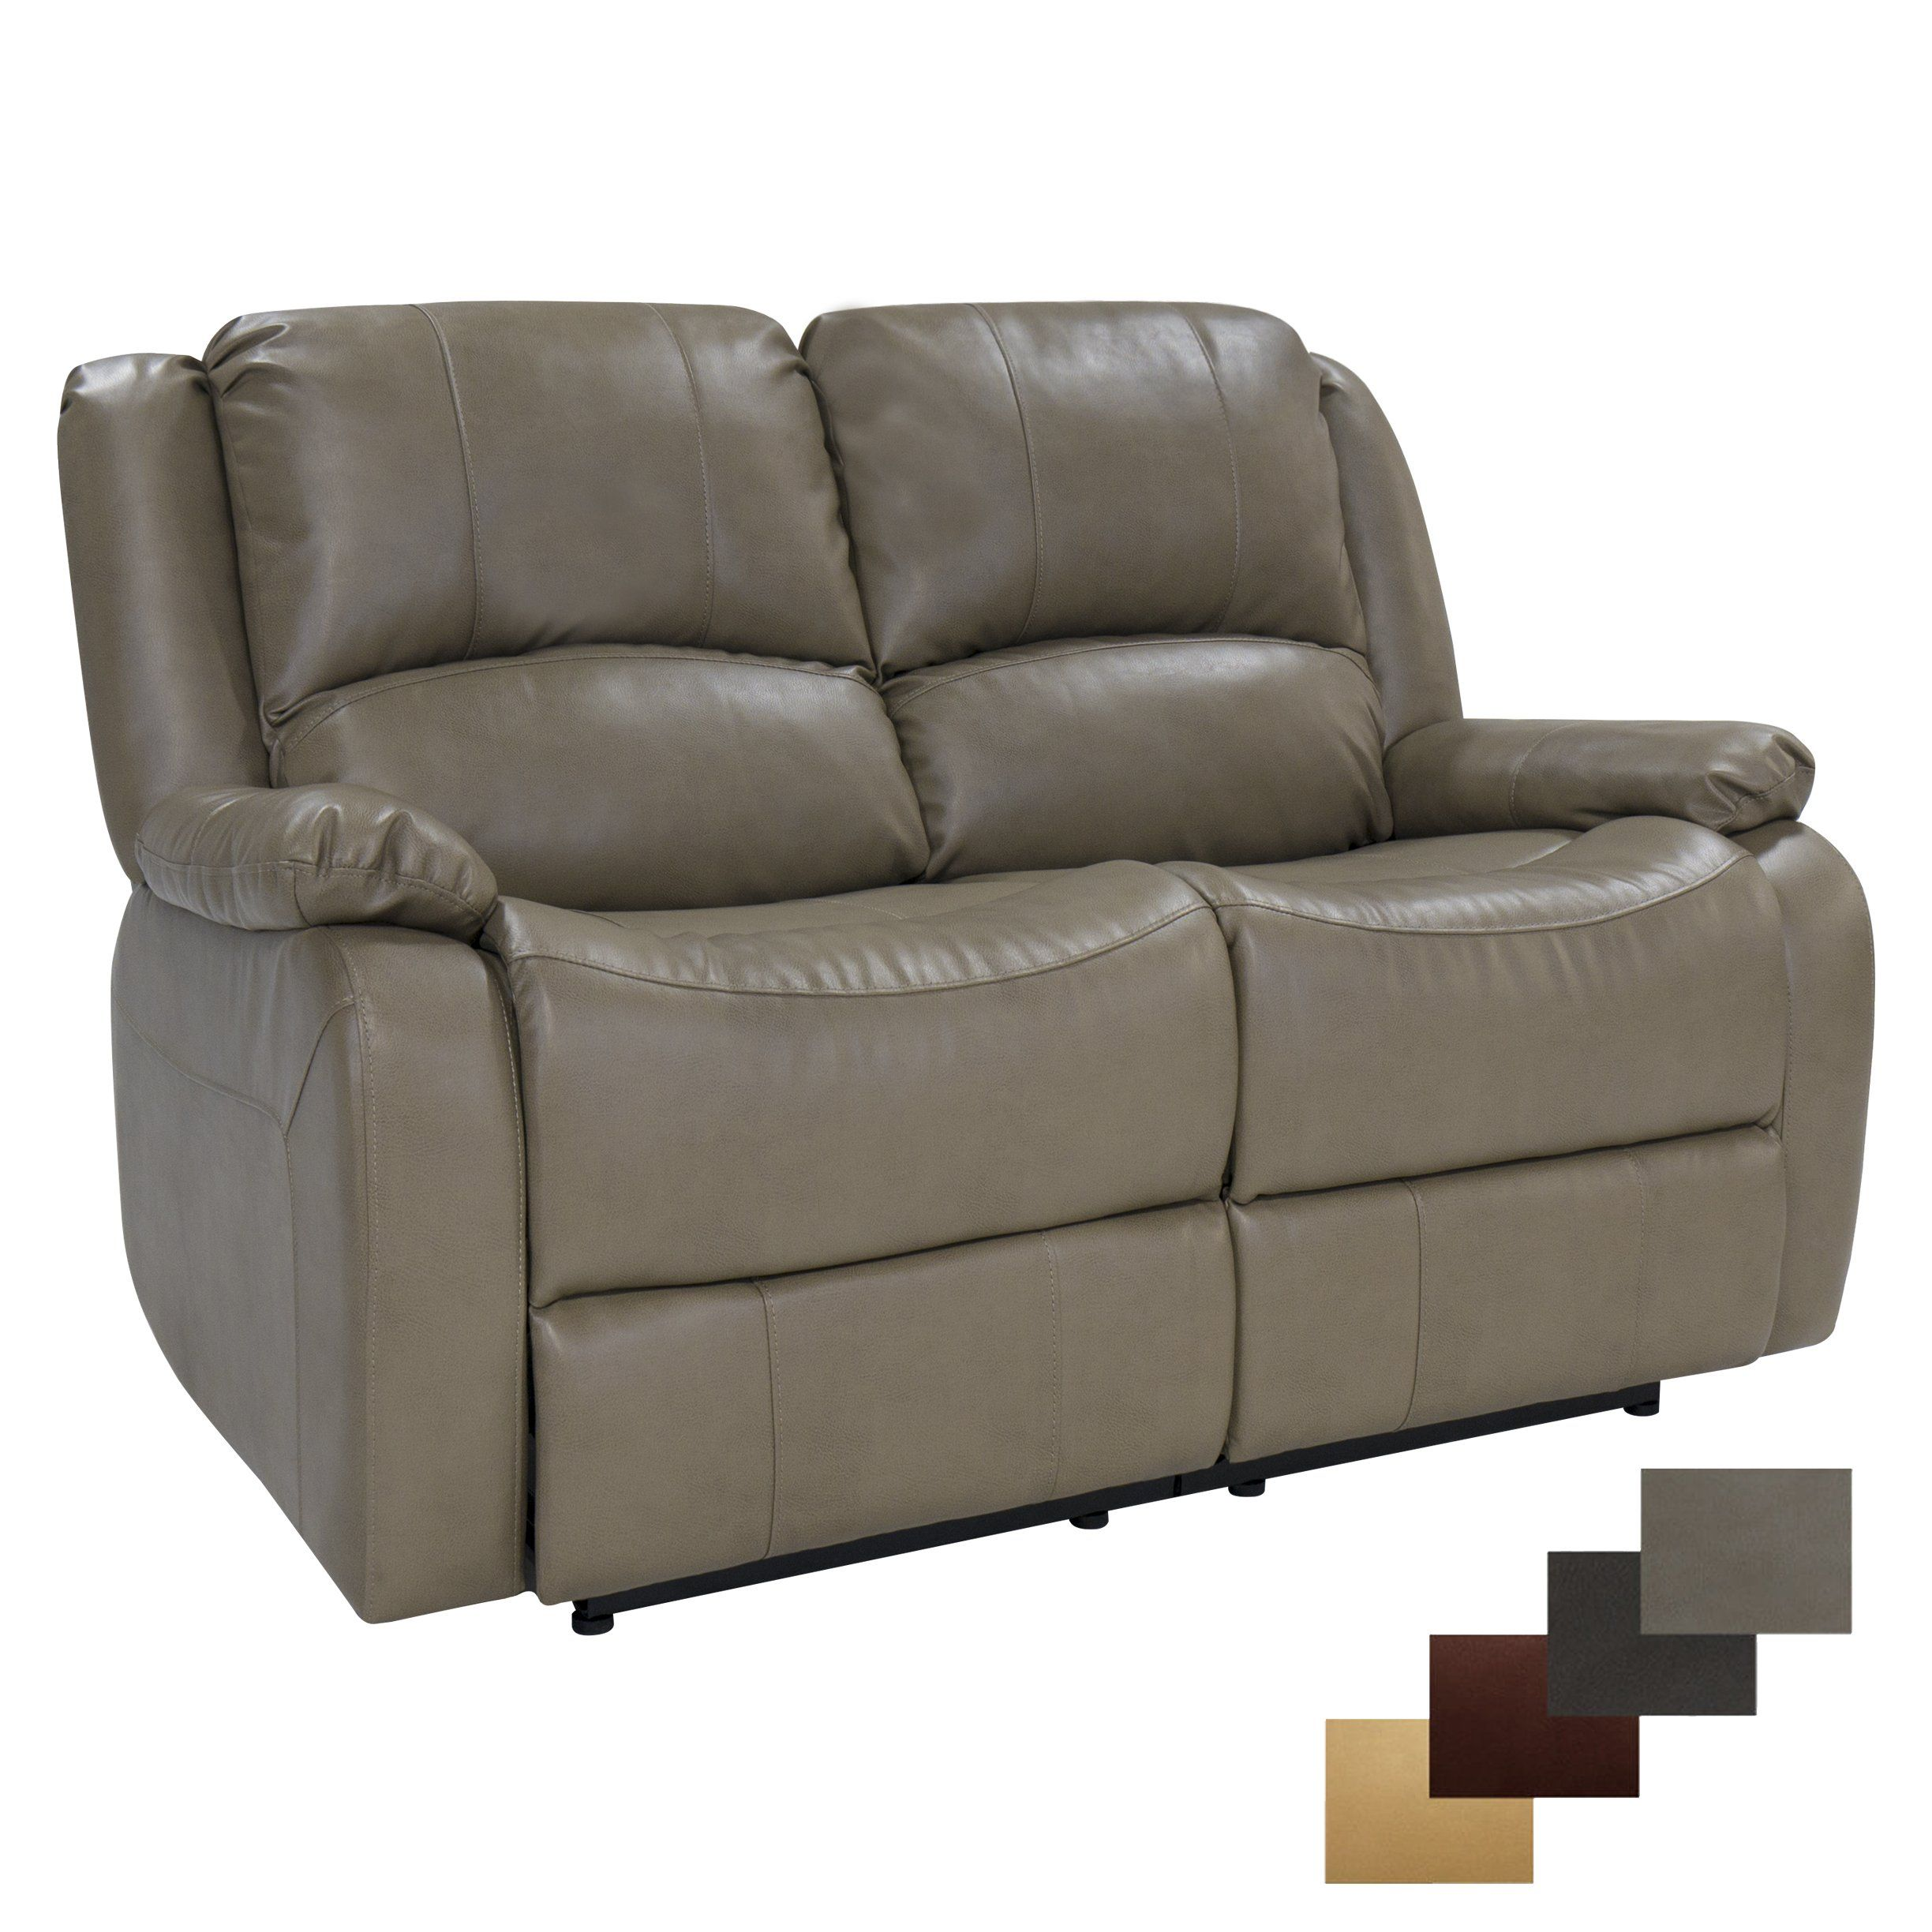 Recpro Charles 58 Double Rv Zero Wall Hugger Recliner Sofa Loveseat Furniture Putty Click Image For More Details Affiliate Link